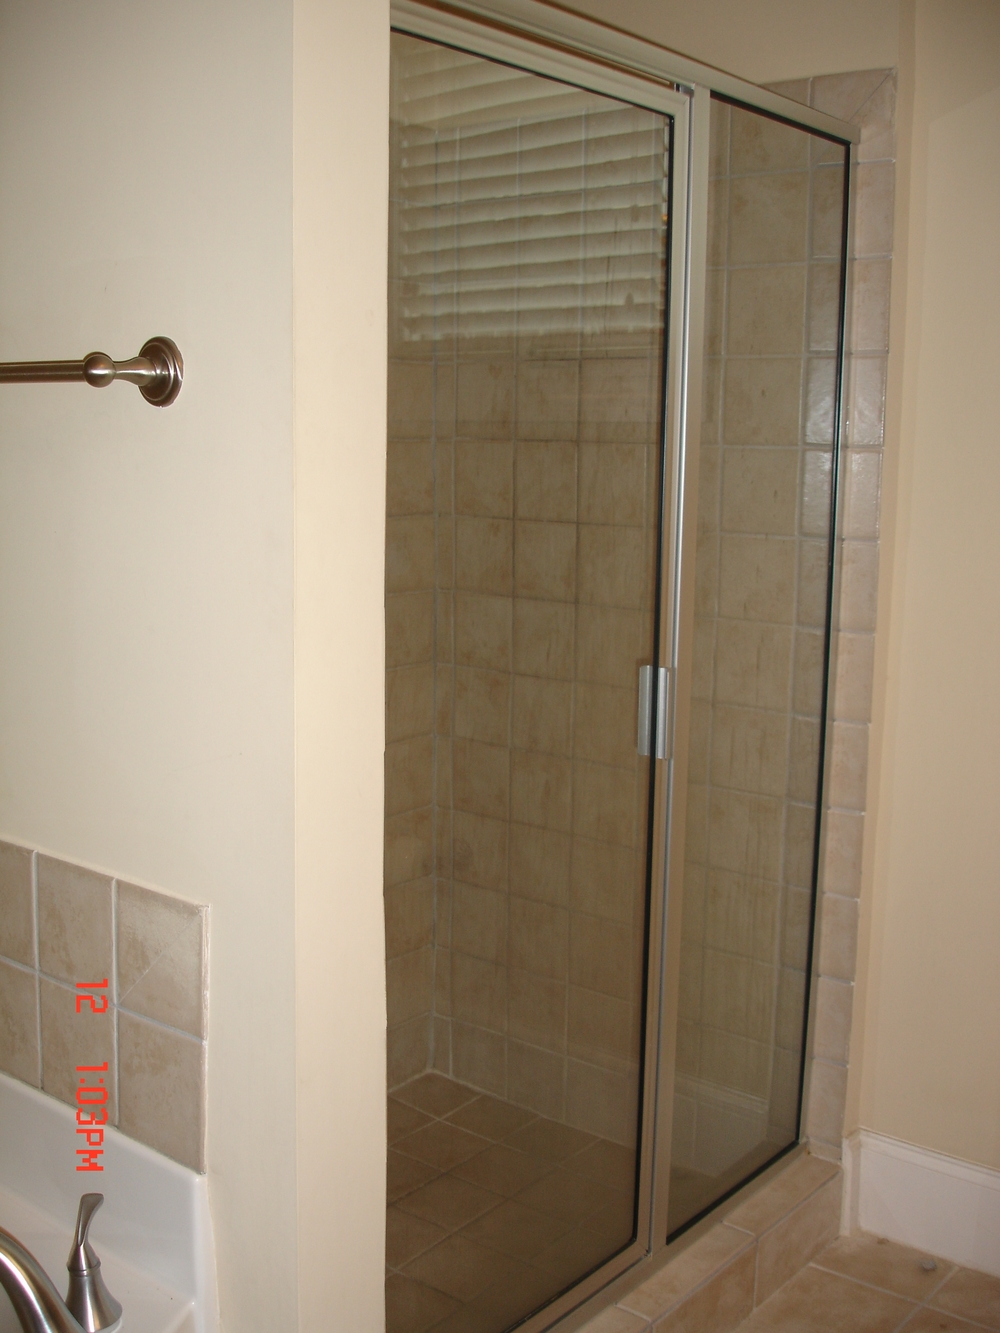 Rosemary Street, 400 W. - #112 - Large shower.JPG